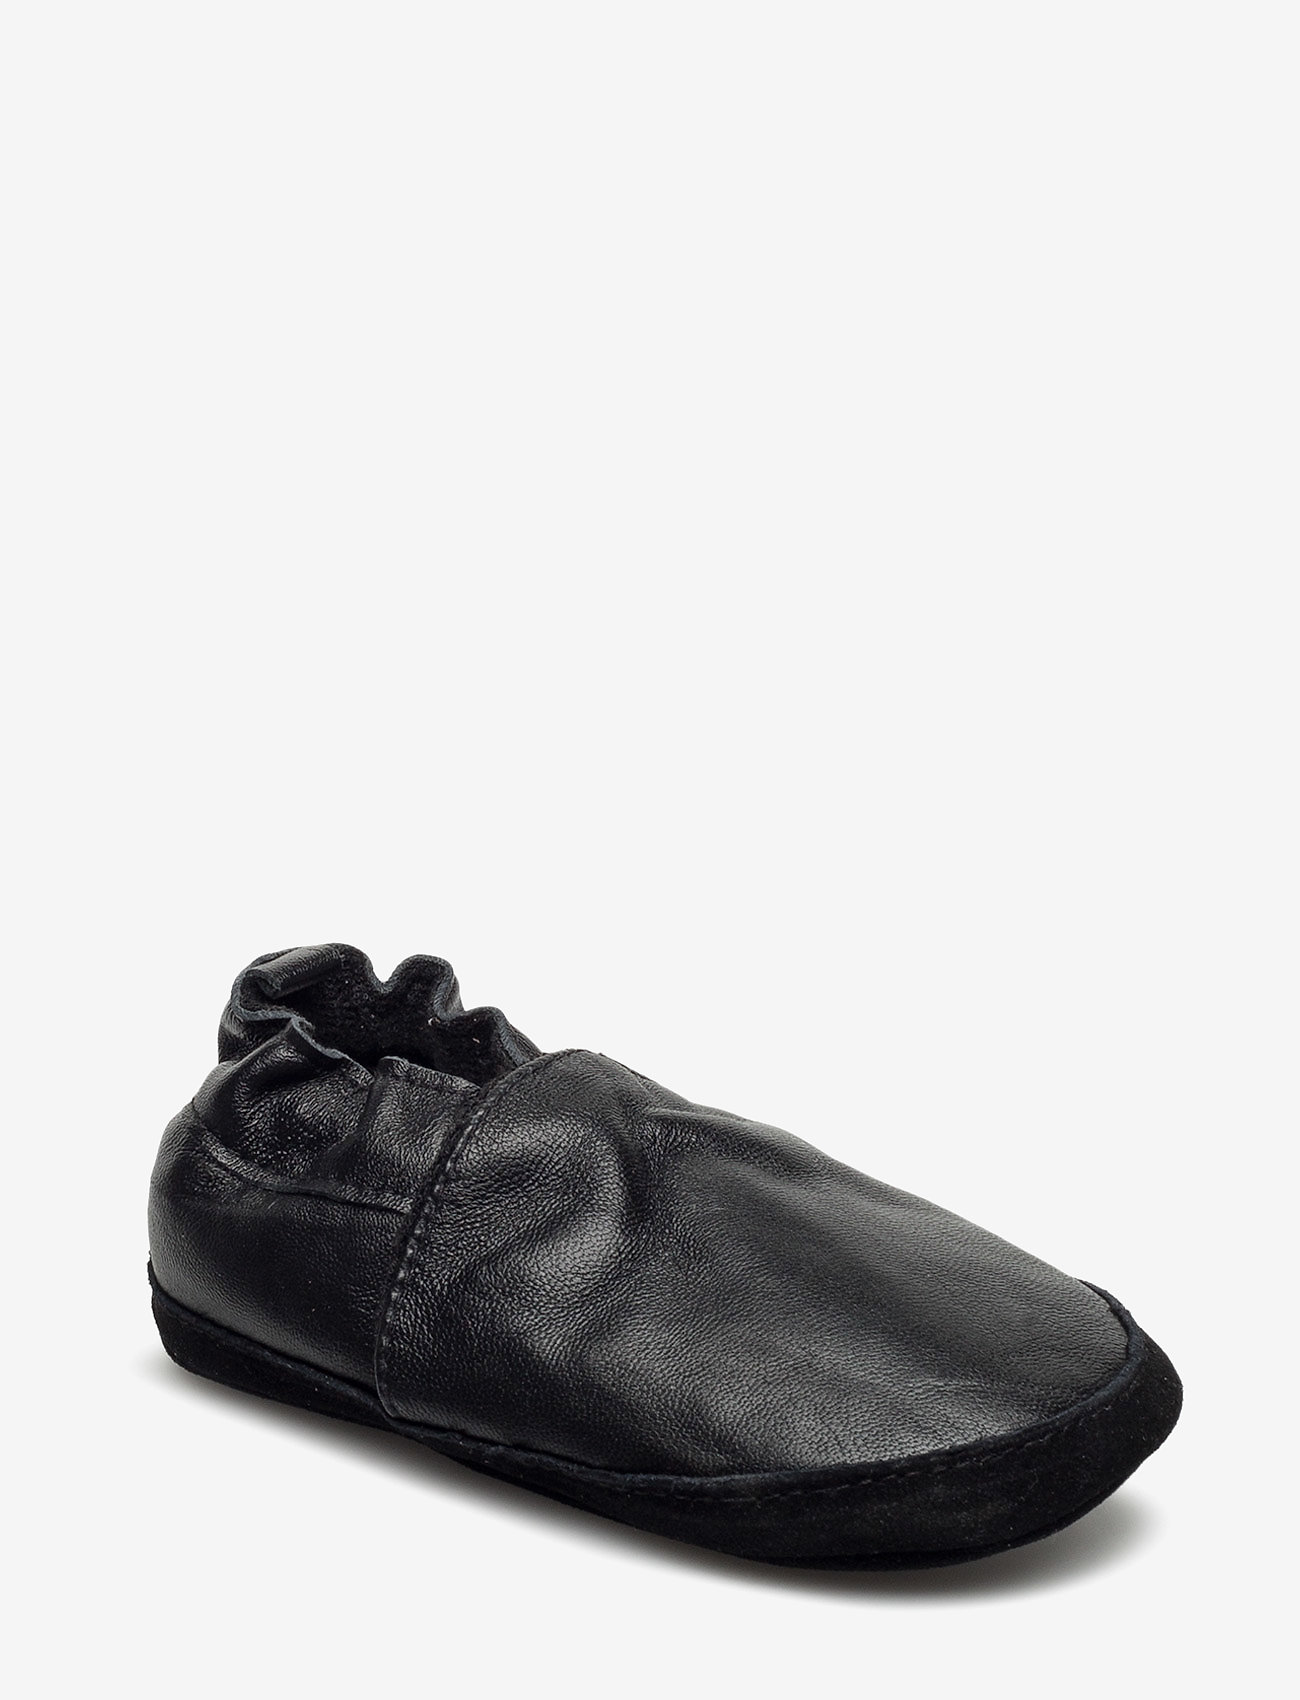 Melton - Leather shoe - Loafer - hausschuhe - 190/black - 0